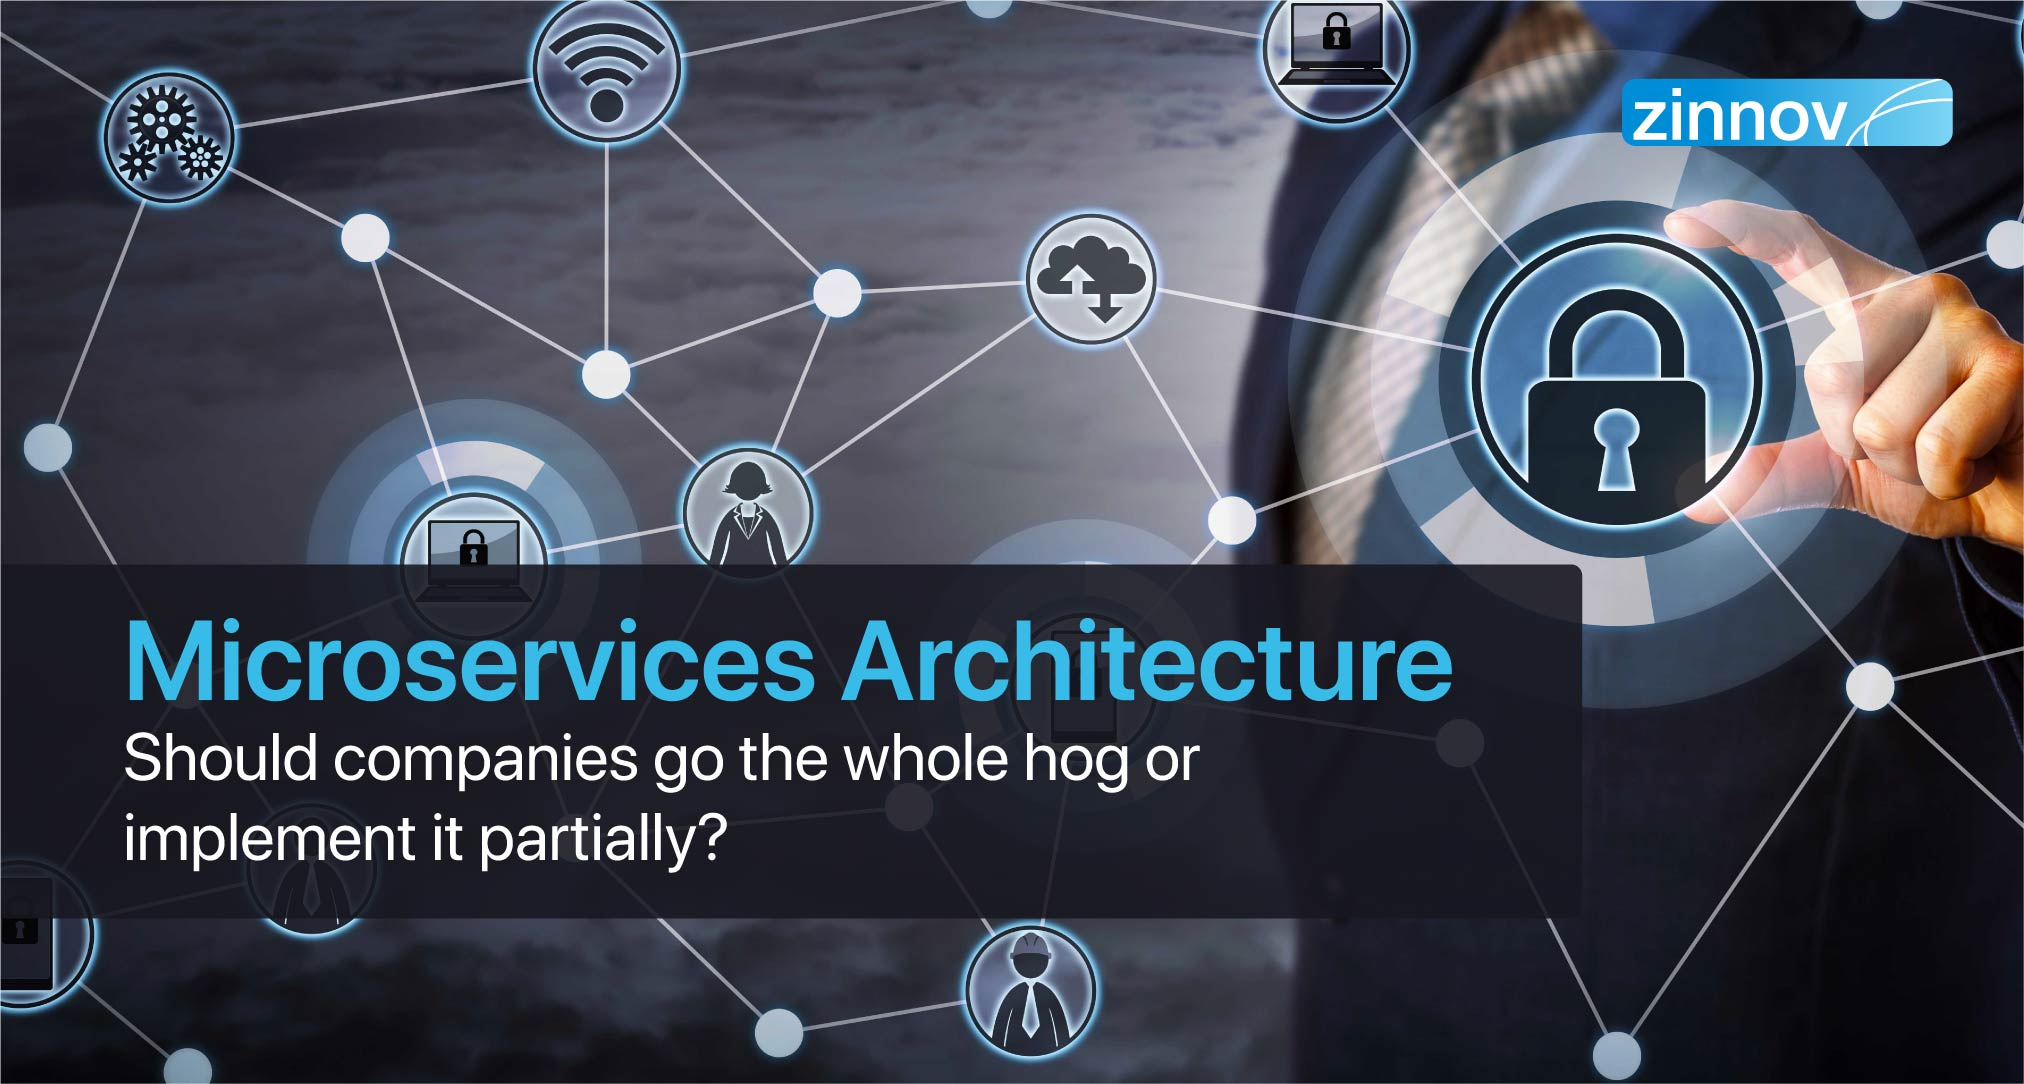 Microservices-Architecture-blog-01-1